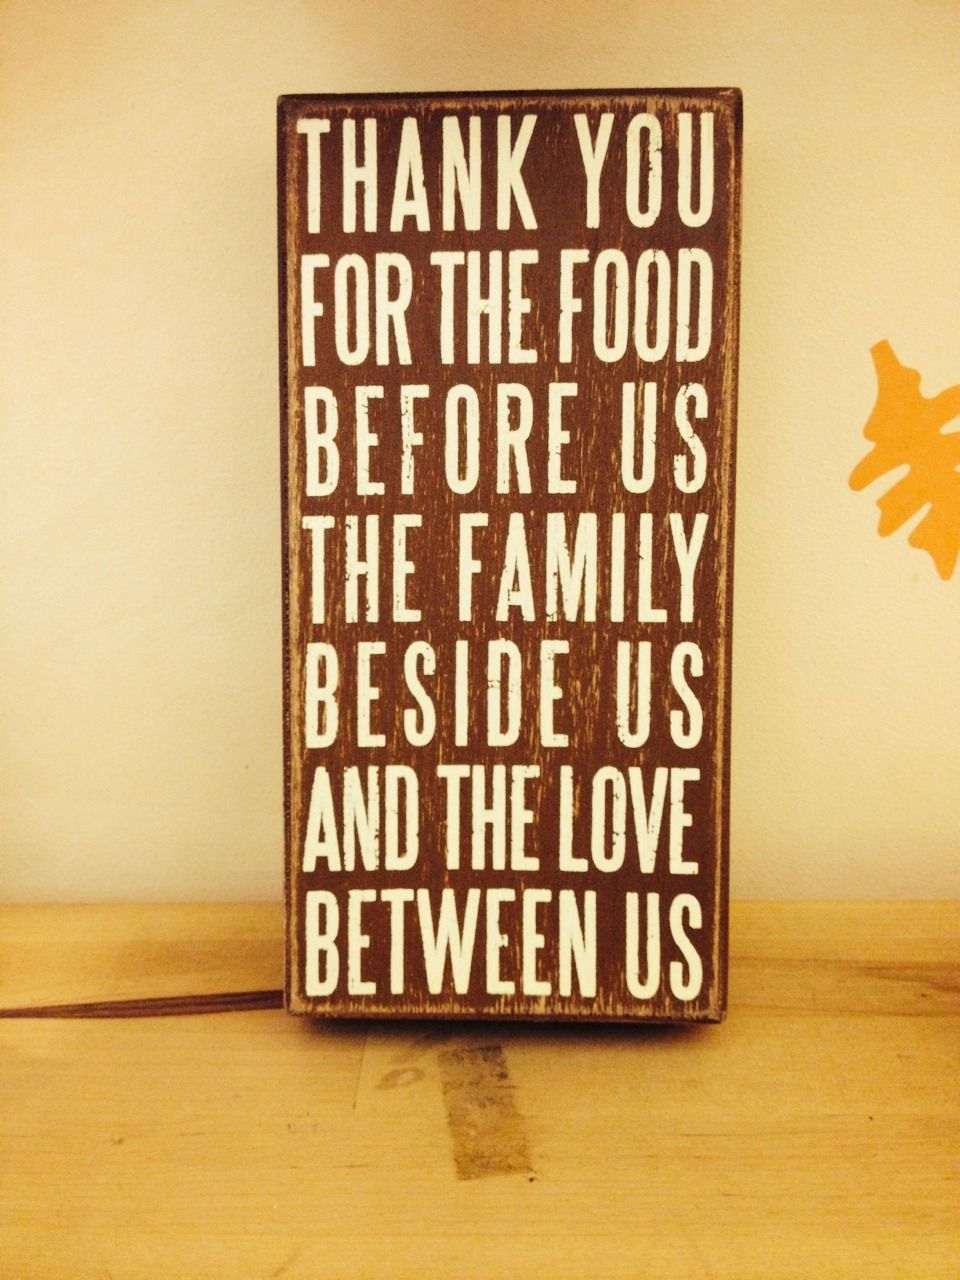 Giving Thanks Quotes 15 Best Thanksgiving Images On Pinterest  Thanksgiving Quotes .